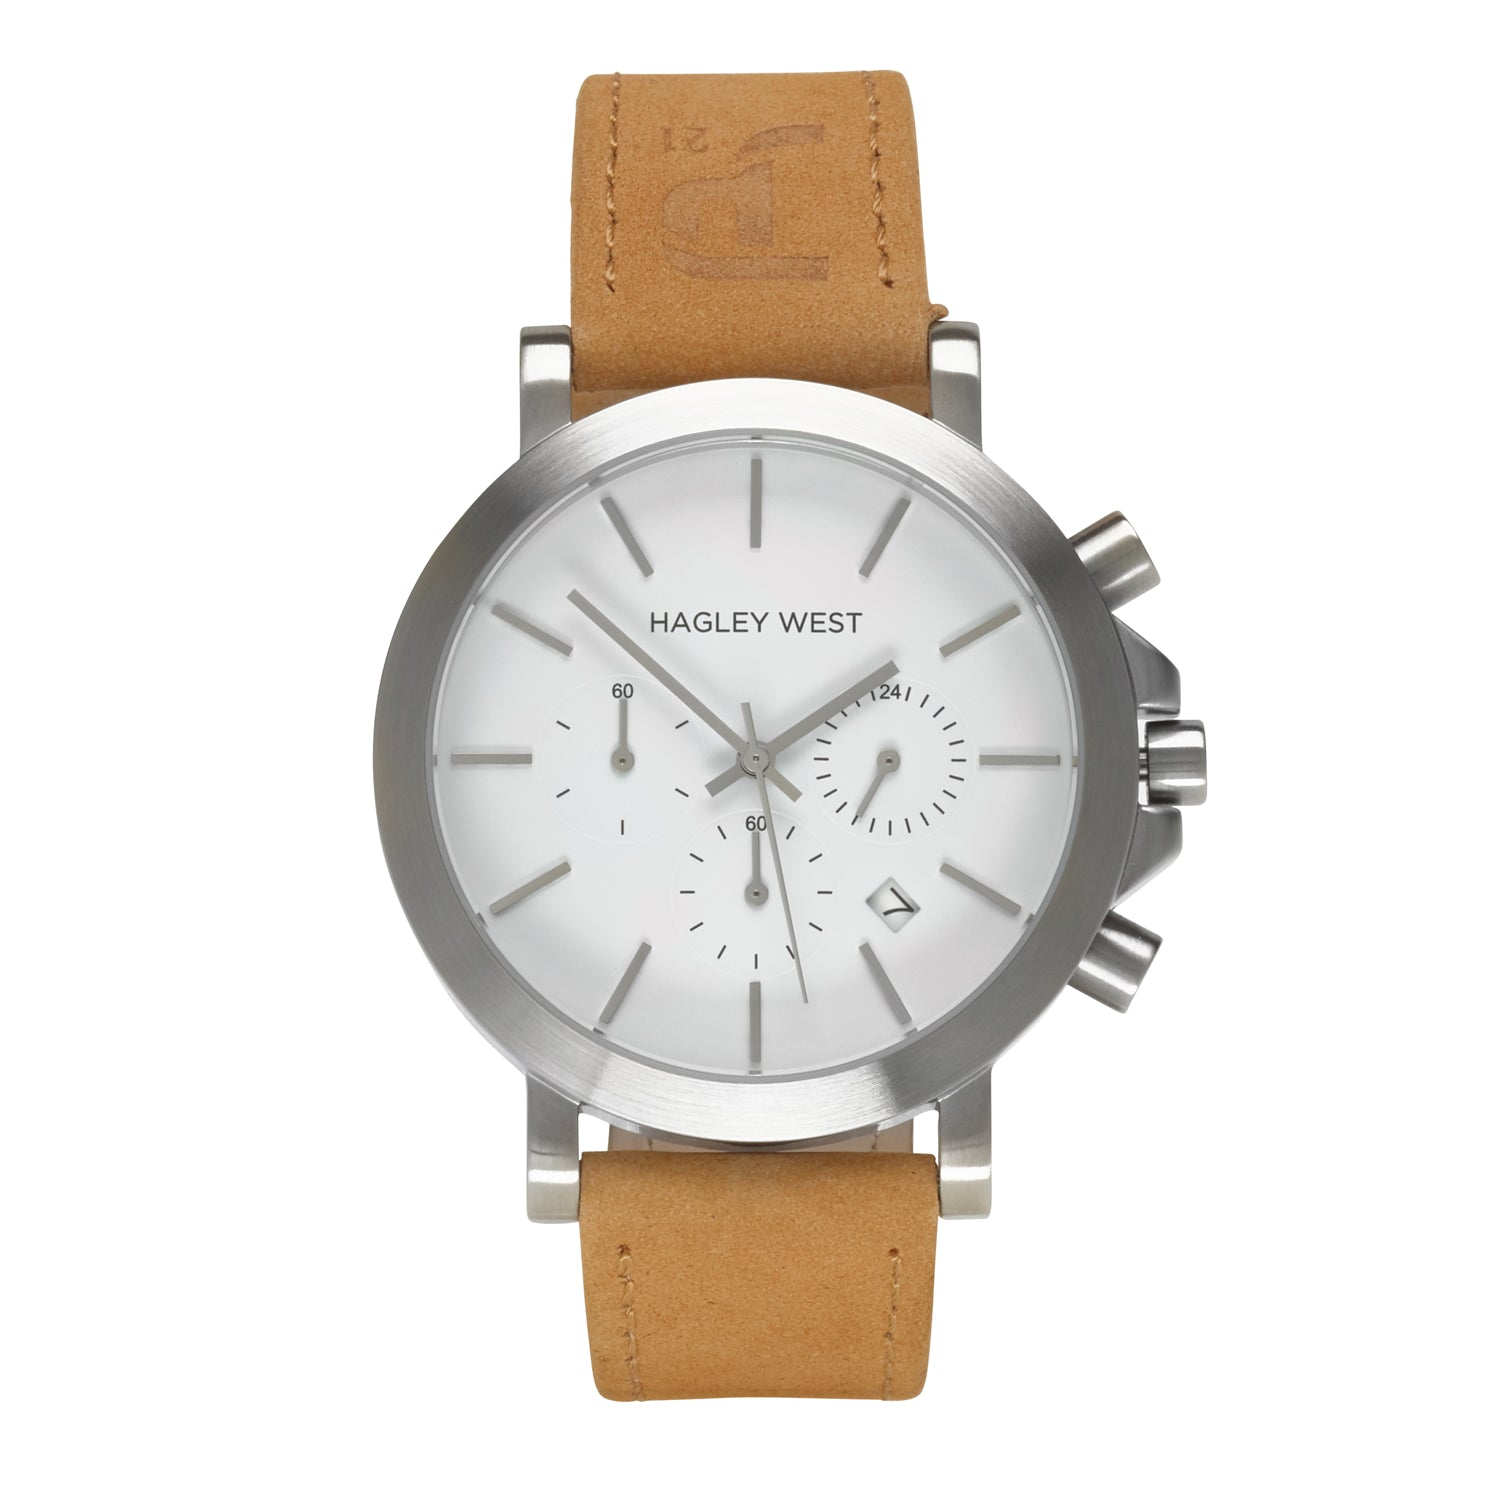 Chrono - JP21 Charity <!-- split -->White/Sandstone Leather - £50 from every watch sold goes to the JP21 Foundation Charity